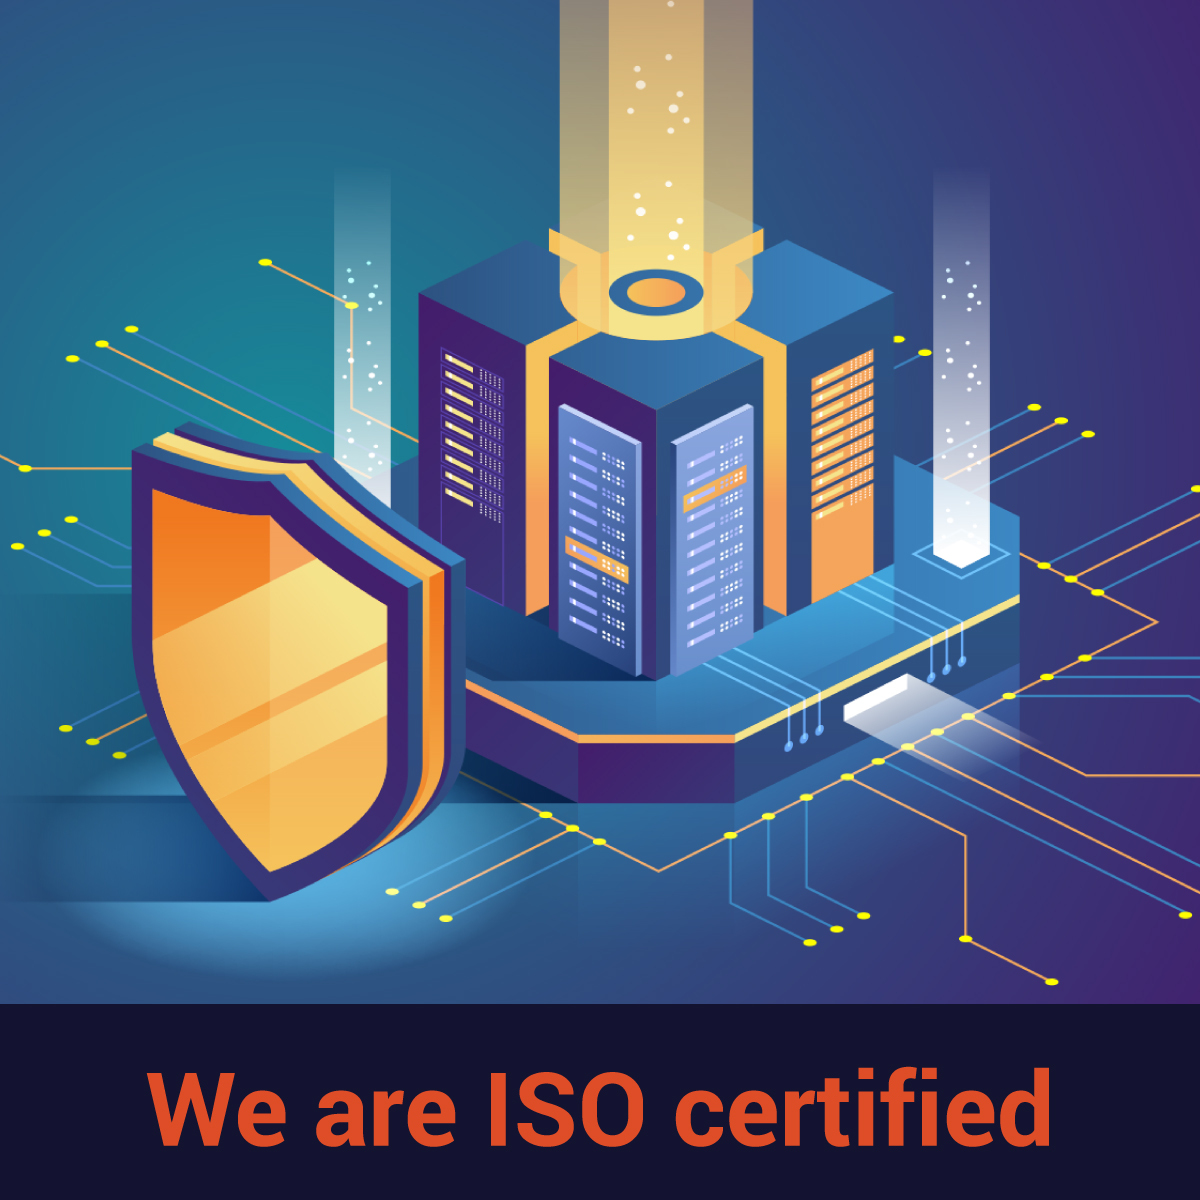 We are ISO certified